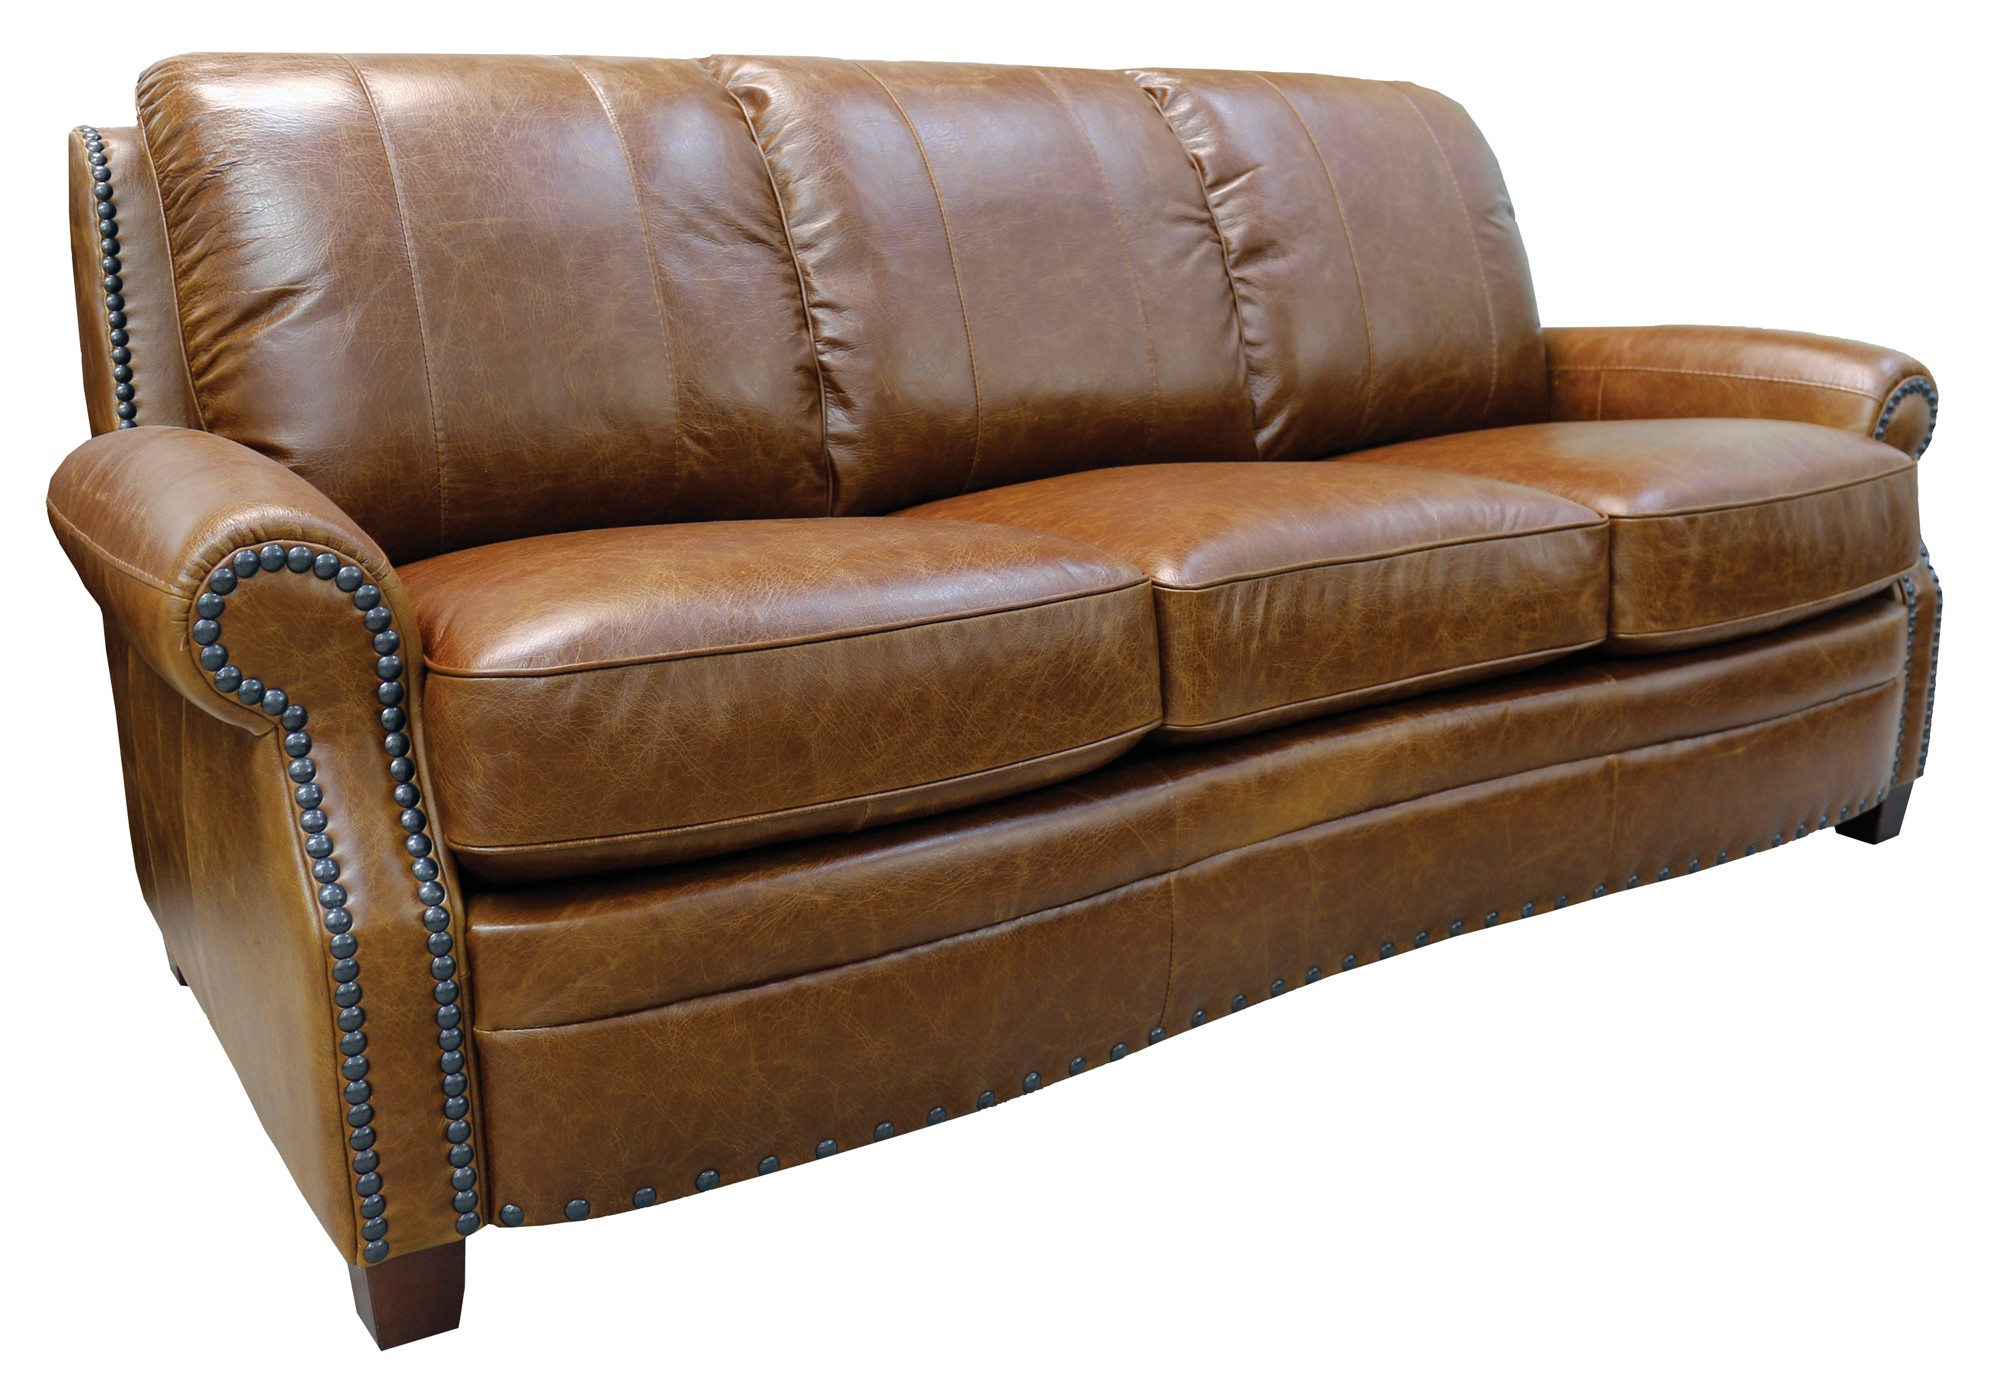 Ashton Collection Luke Leather Furniture